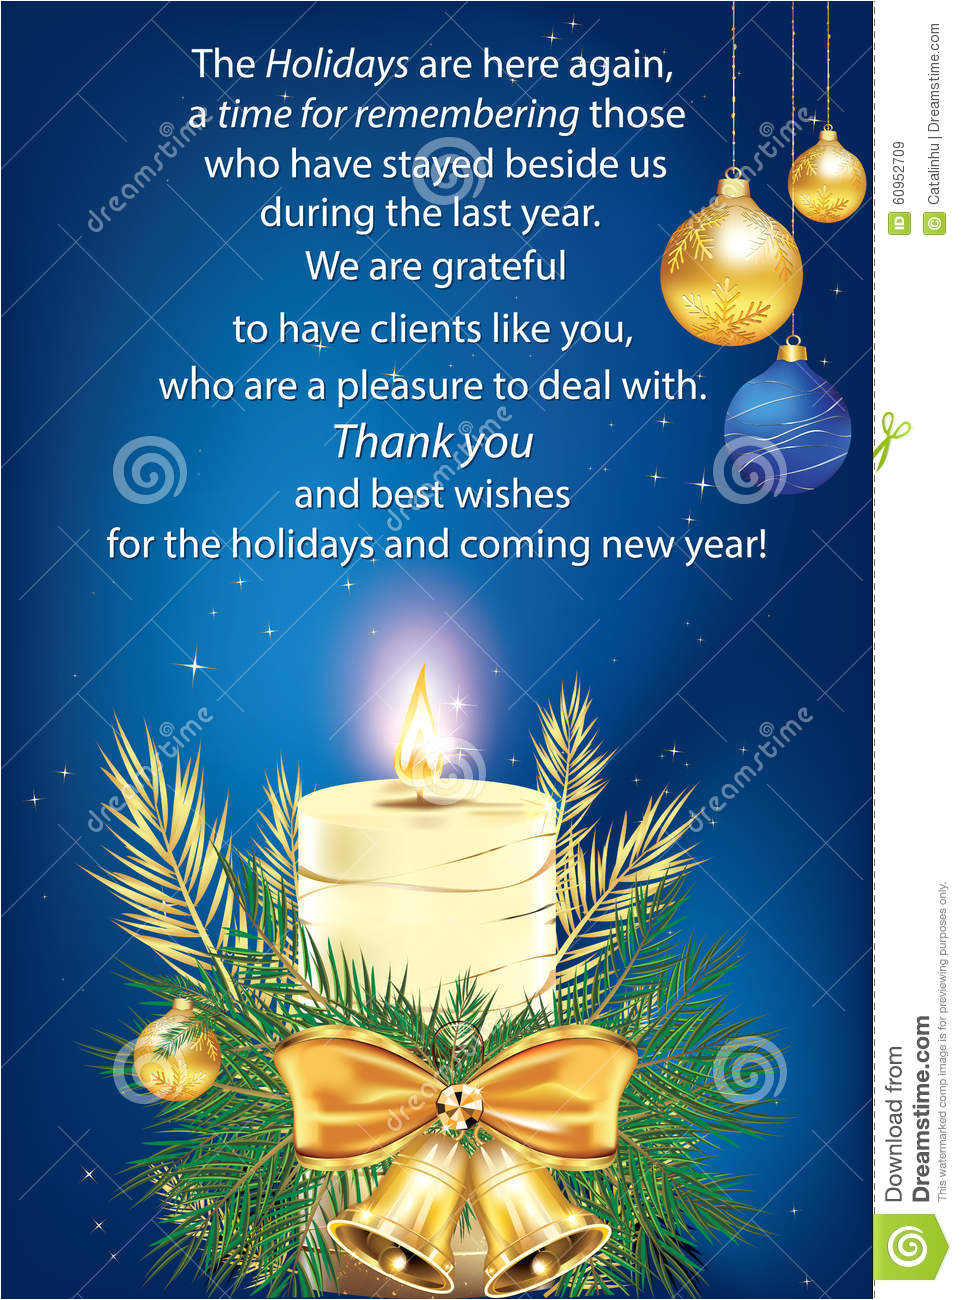 thank you blue business greeting card christmas new year especially created companies want to their clients 60952709 jpg